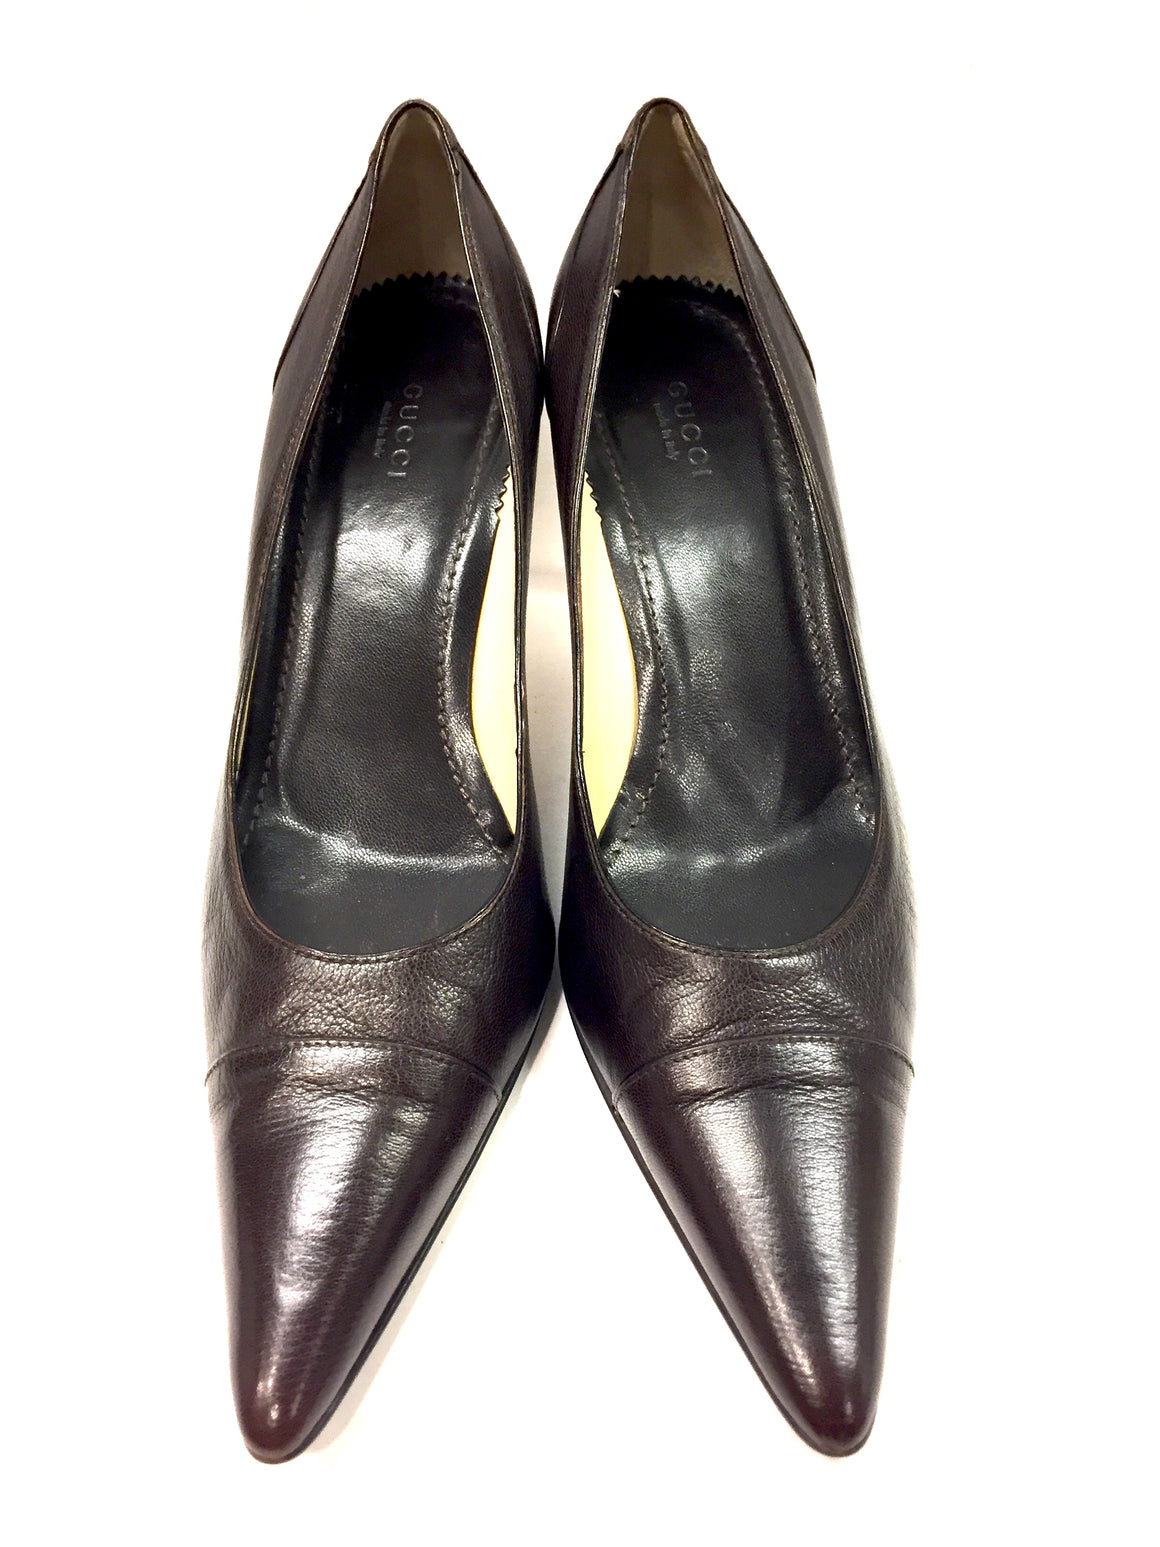 GUCCI Brown Leather Pointed Cap Toes Hi-Heel Pumps Sz10B